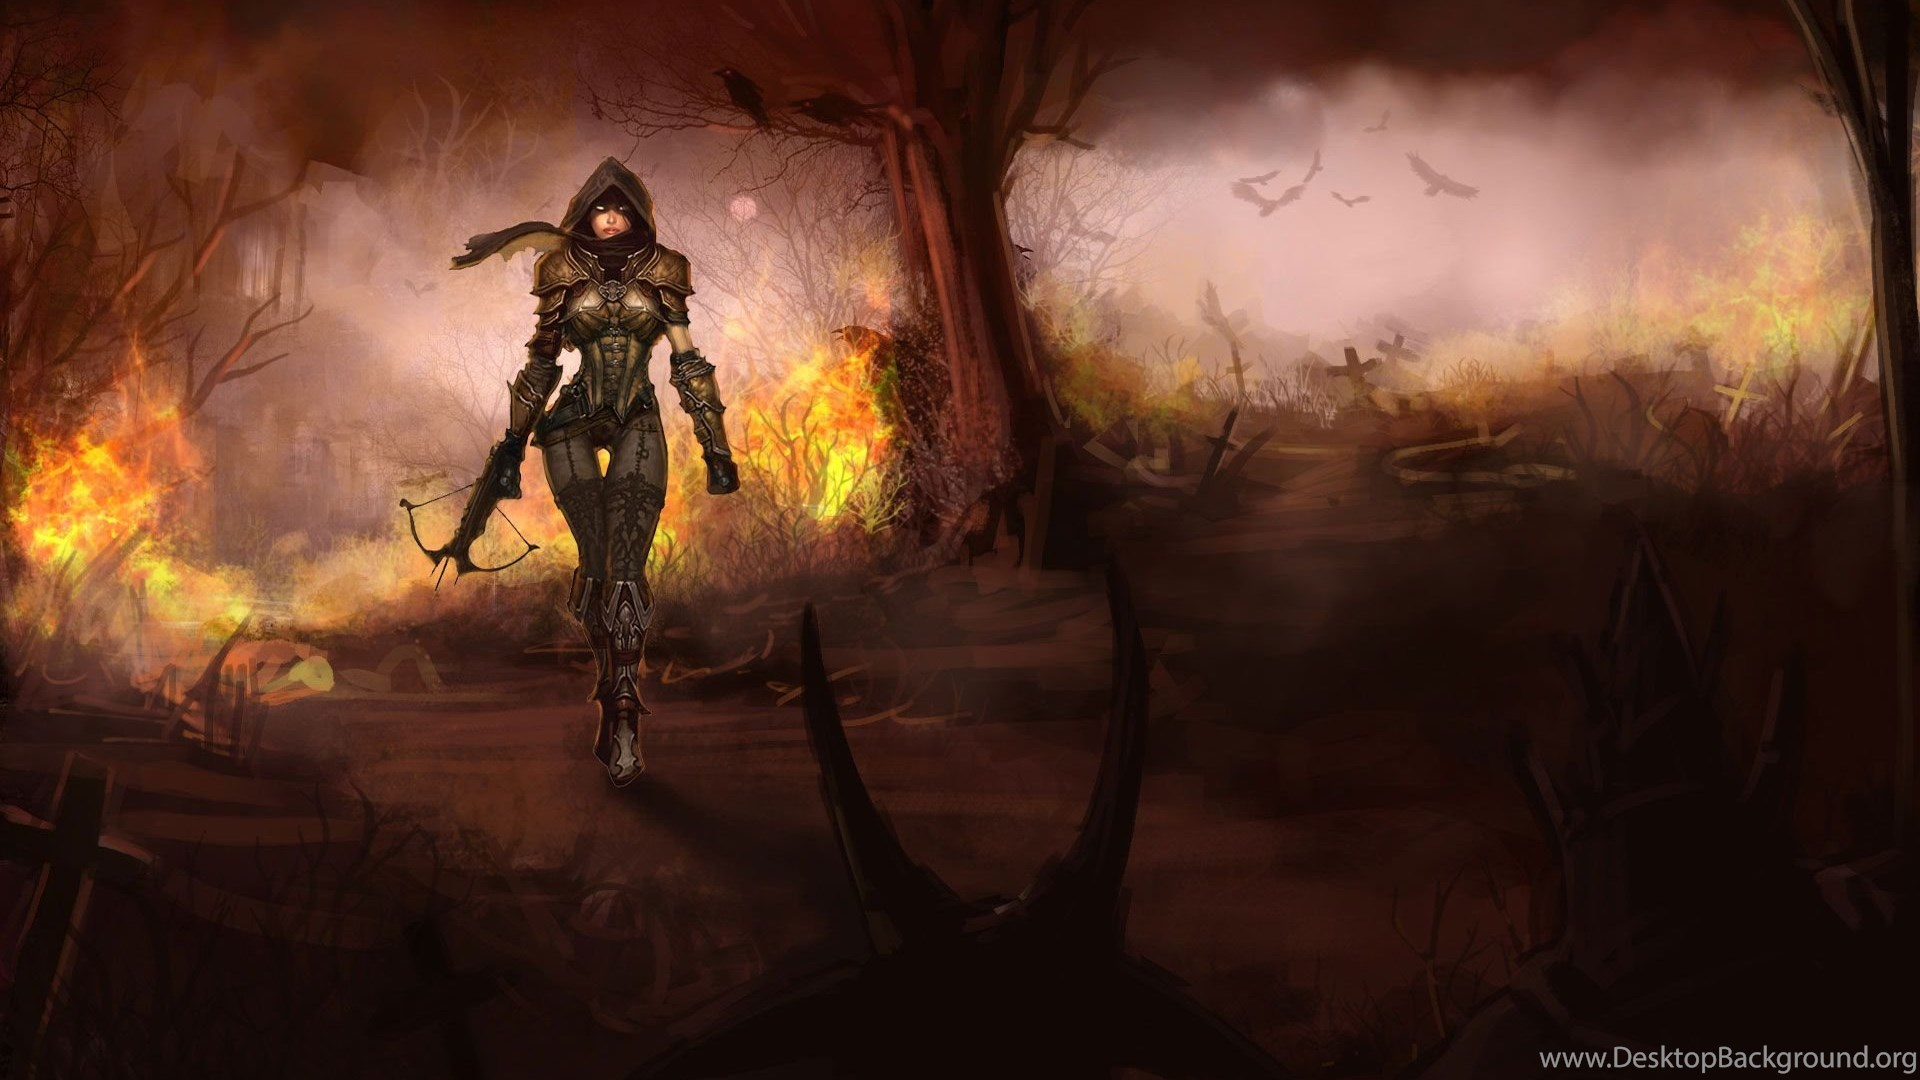 Diablo 3 Demon Hunter Wallpapers 199863 Desktop Background